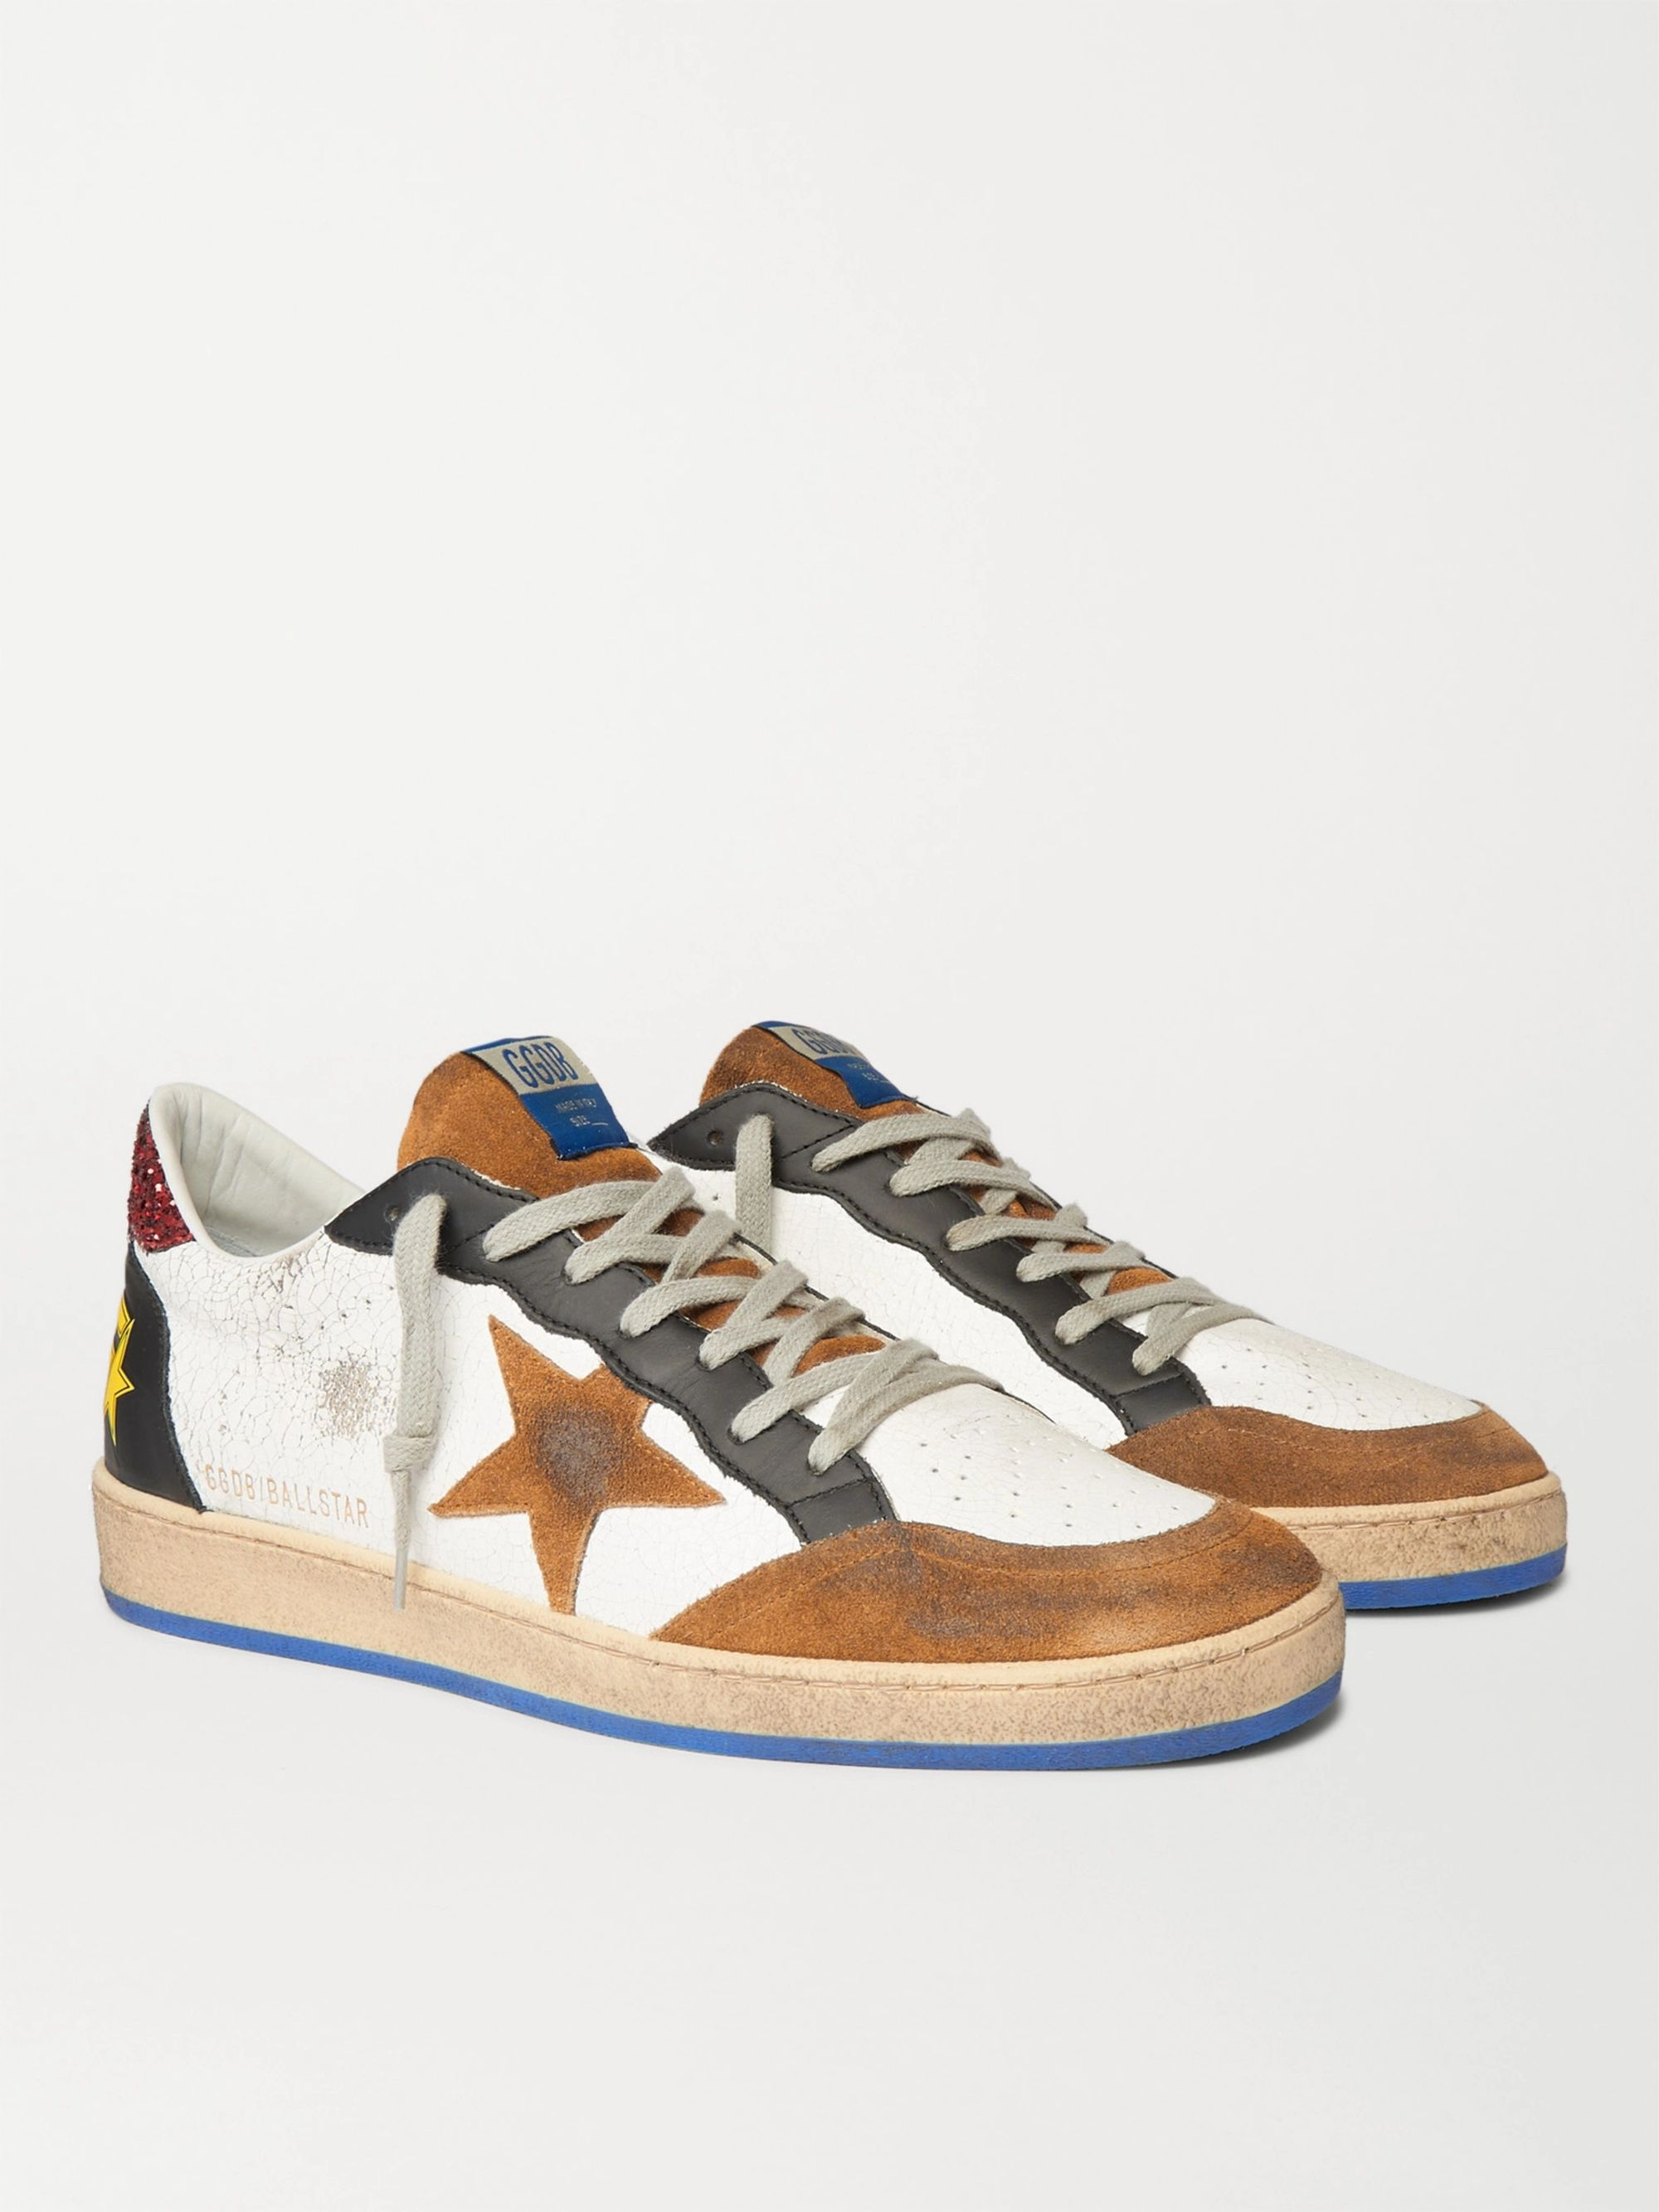 Ball Star Distressed Cracked-Leather